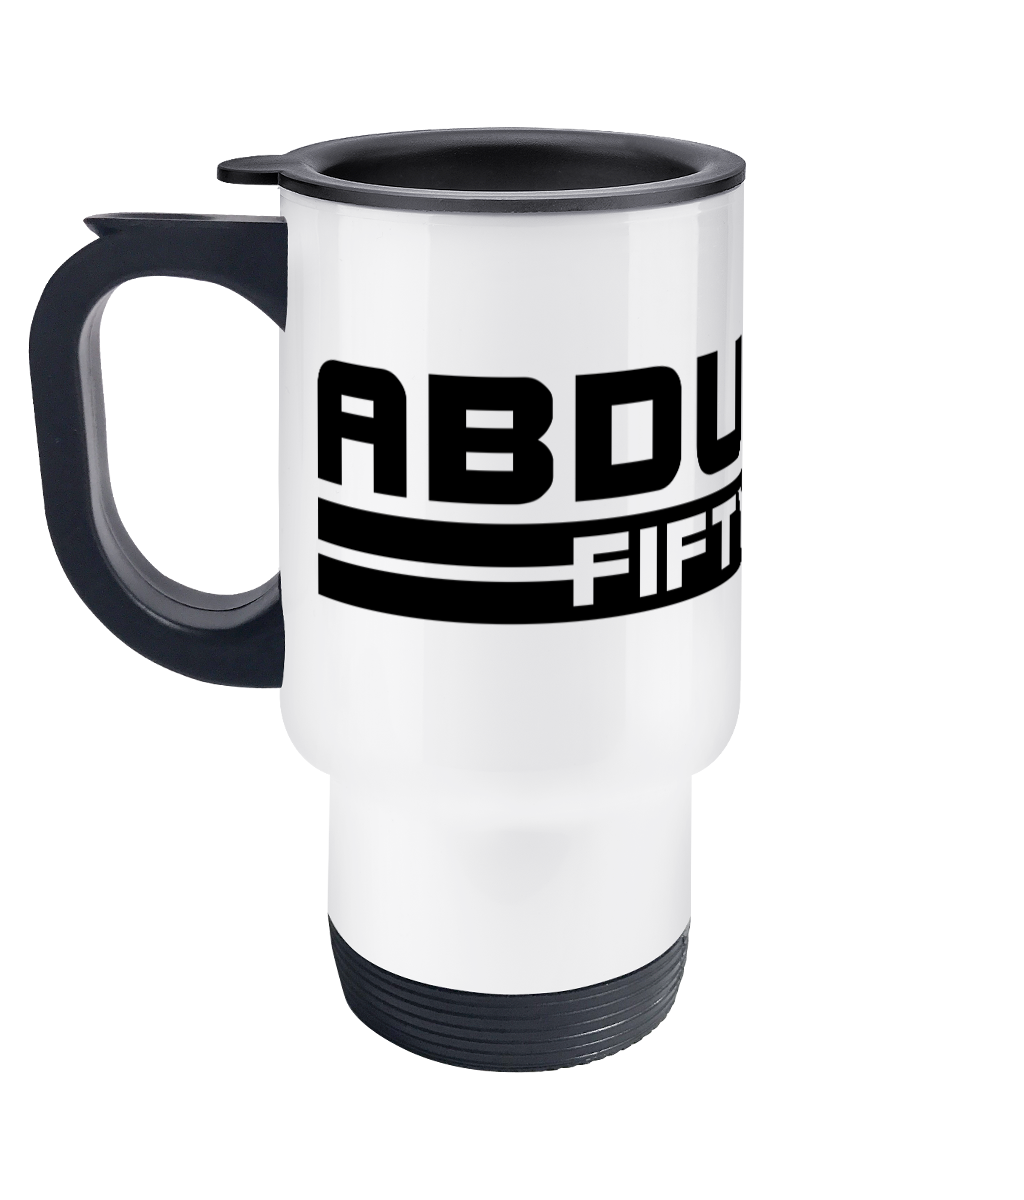 Travel Mug - Abduction 51 Extraterrestrial Streetwear | UFO & Alien Inspired